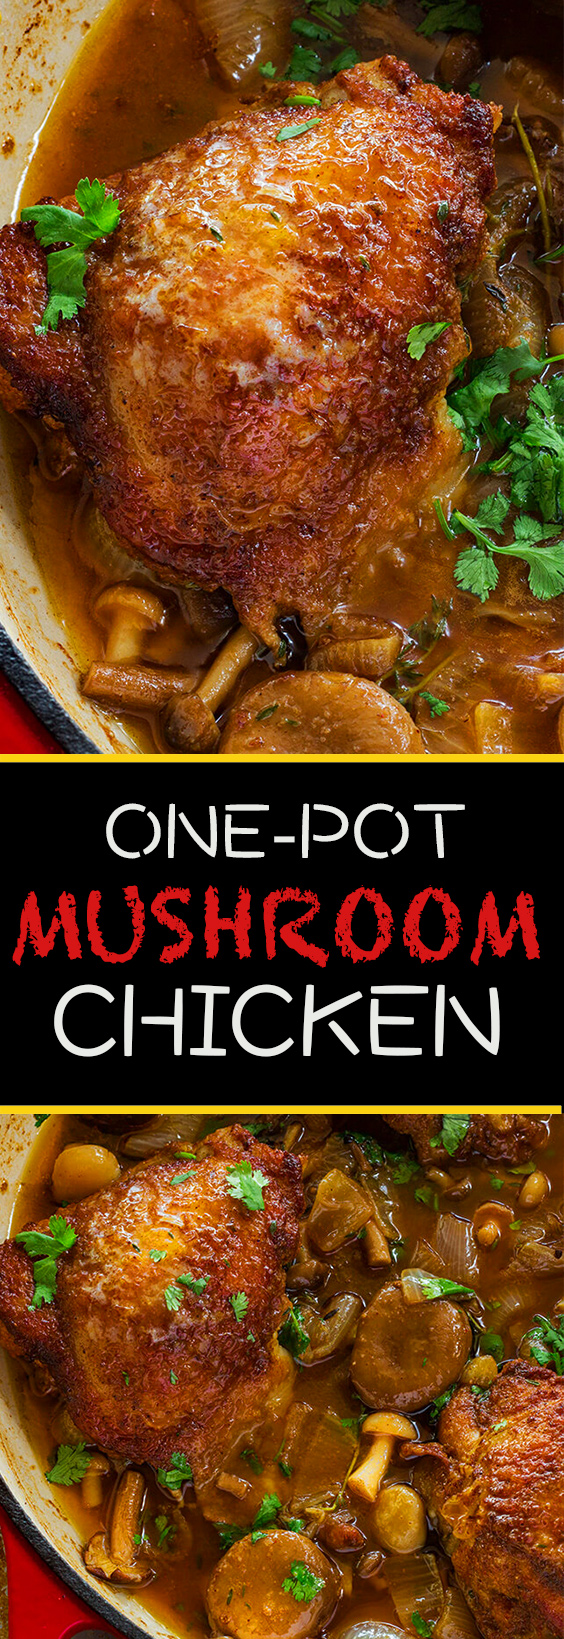 This easy mushroom and onion chicken dish topped with a savory sauce is such a tasty weeknight lazy weekend meal.